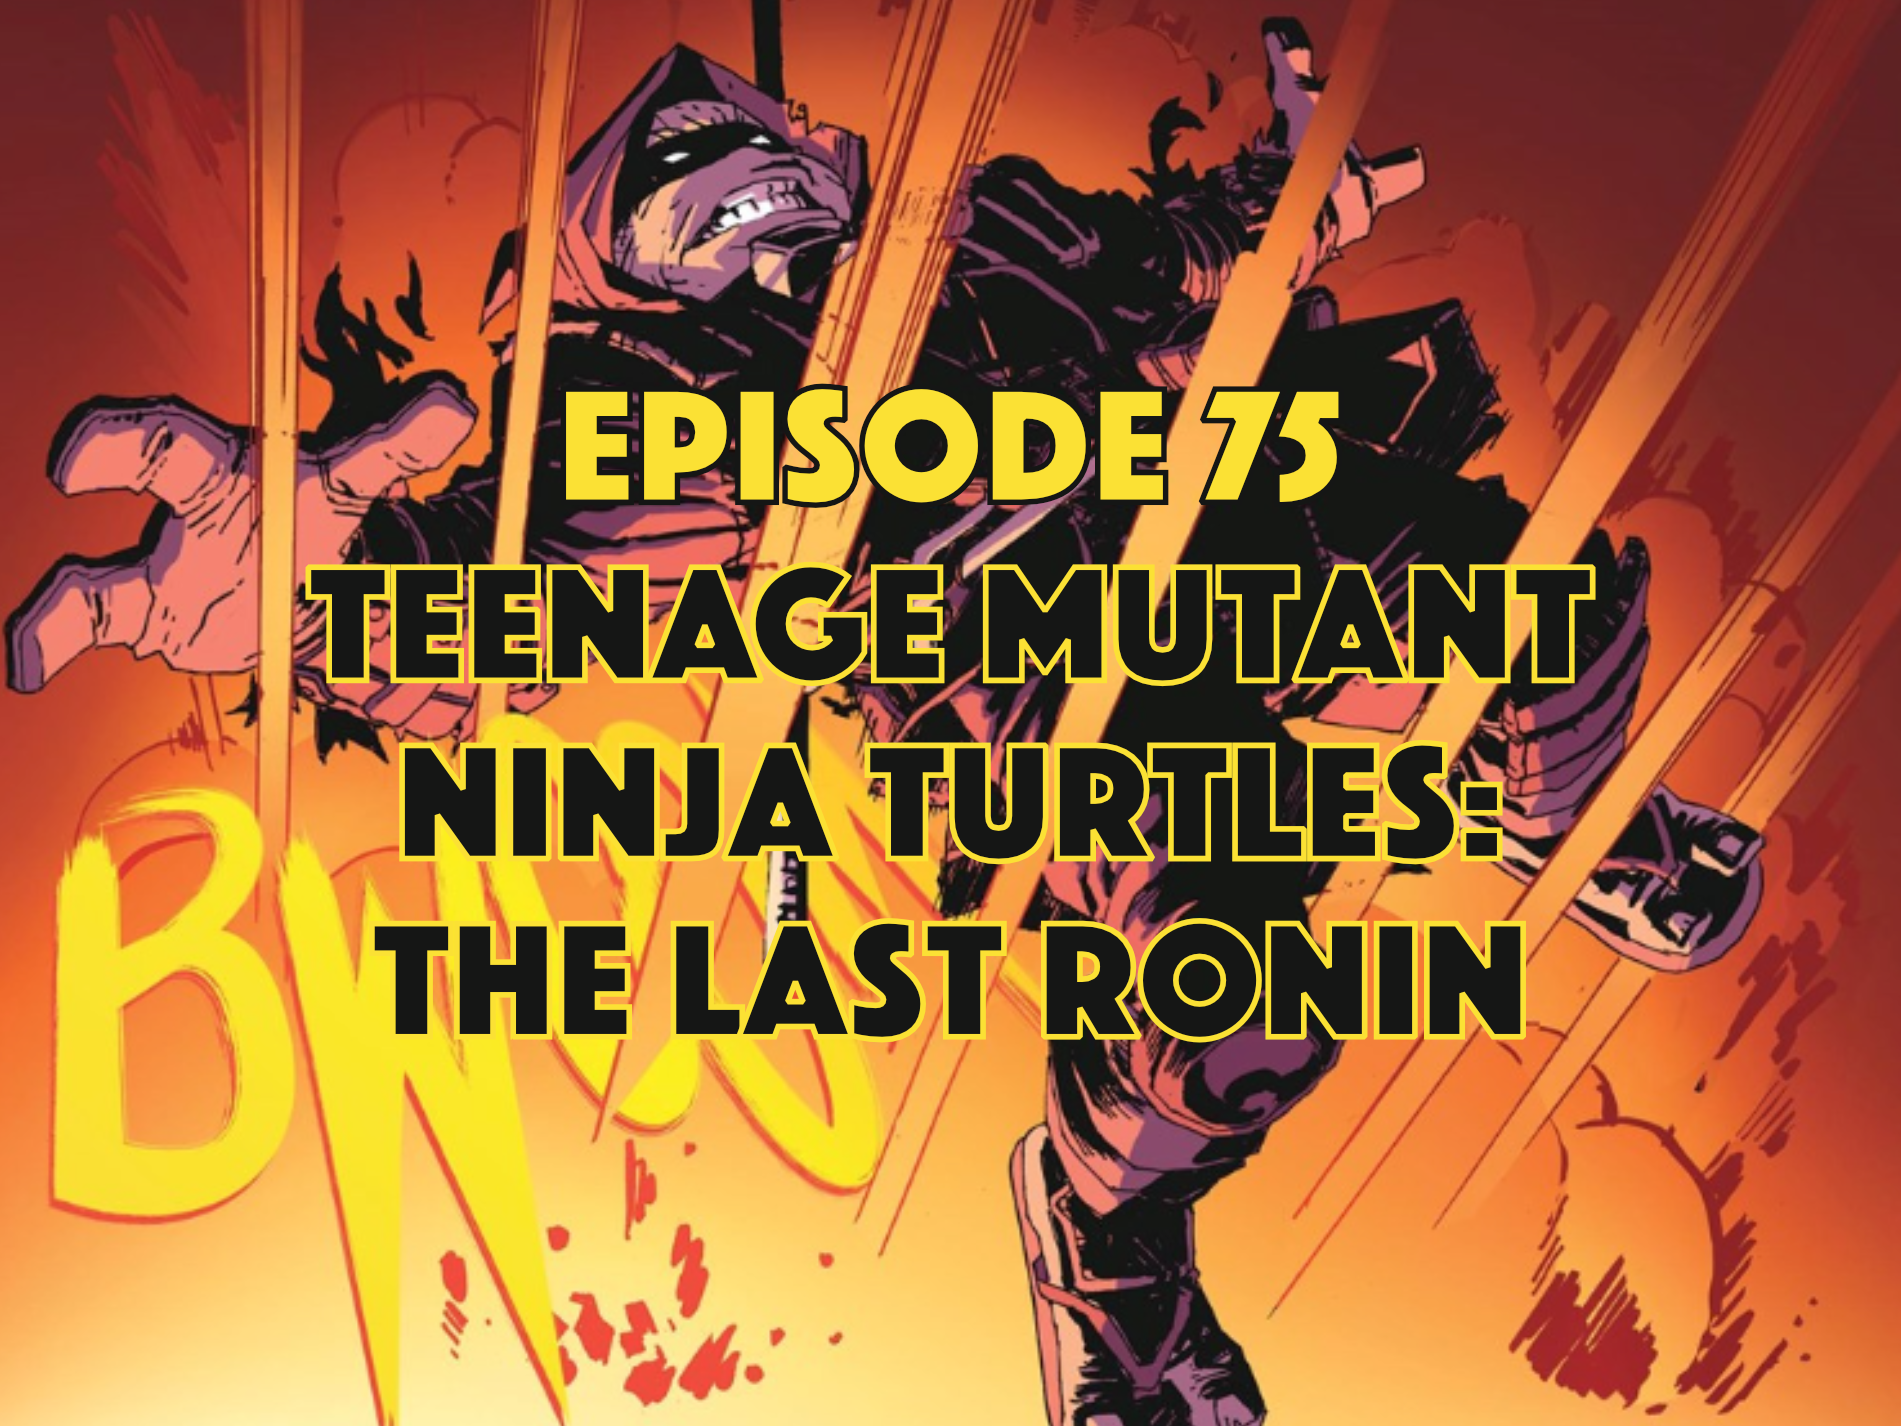 TMNT, The Last Ronin, Graphic Novel Explorers Club, Comic Book Podcast, Graphic Novel Podcast